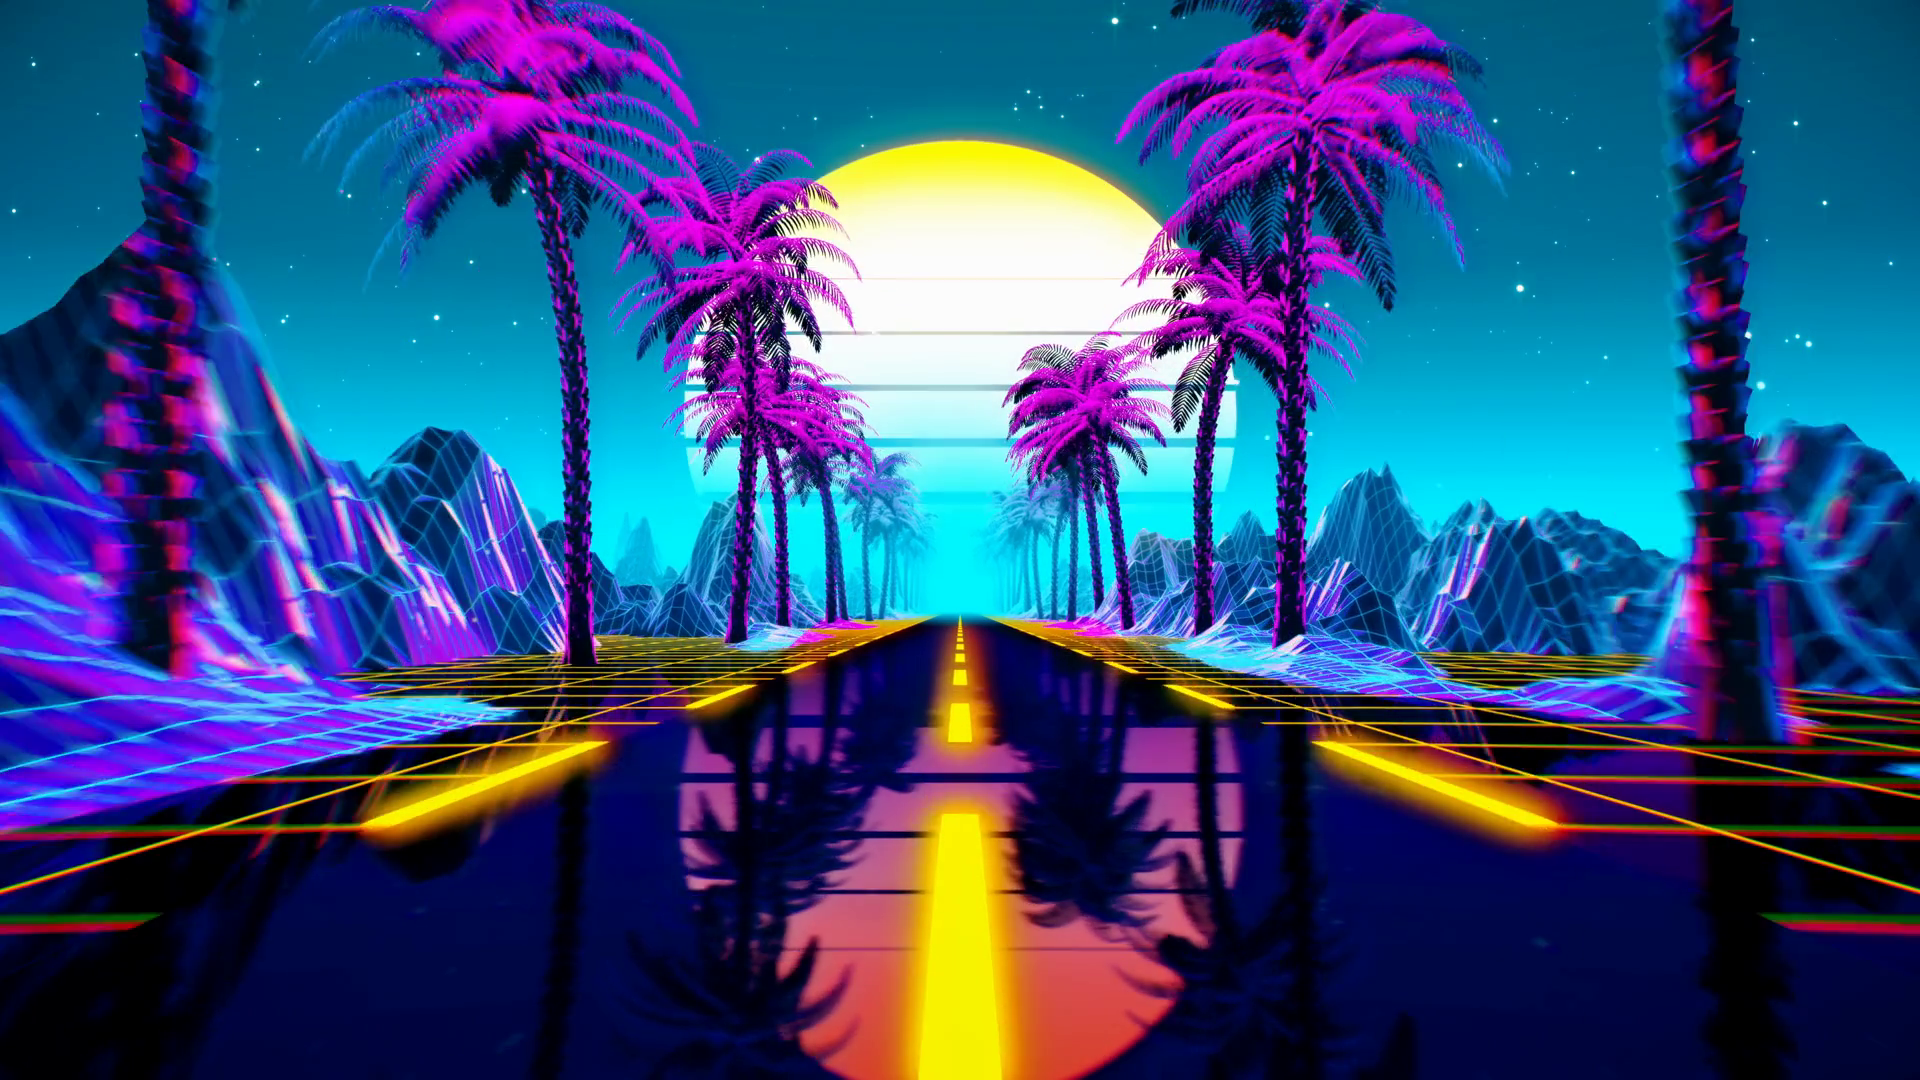 videoblocks 80s retro futuristic sci fi seamless loop retrowave vj videogame landscape neon lights and low poly terrain grid stylized vintage vaporwave 3d animation background with mountains sun and stars 4k hws1g1vl8 thumbnail 1080 01